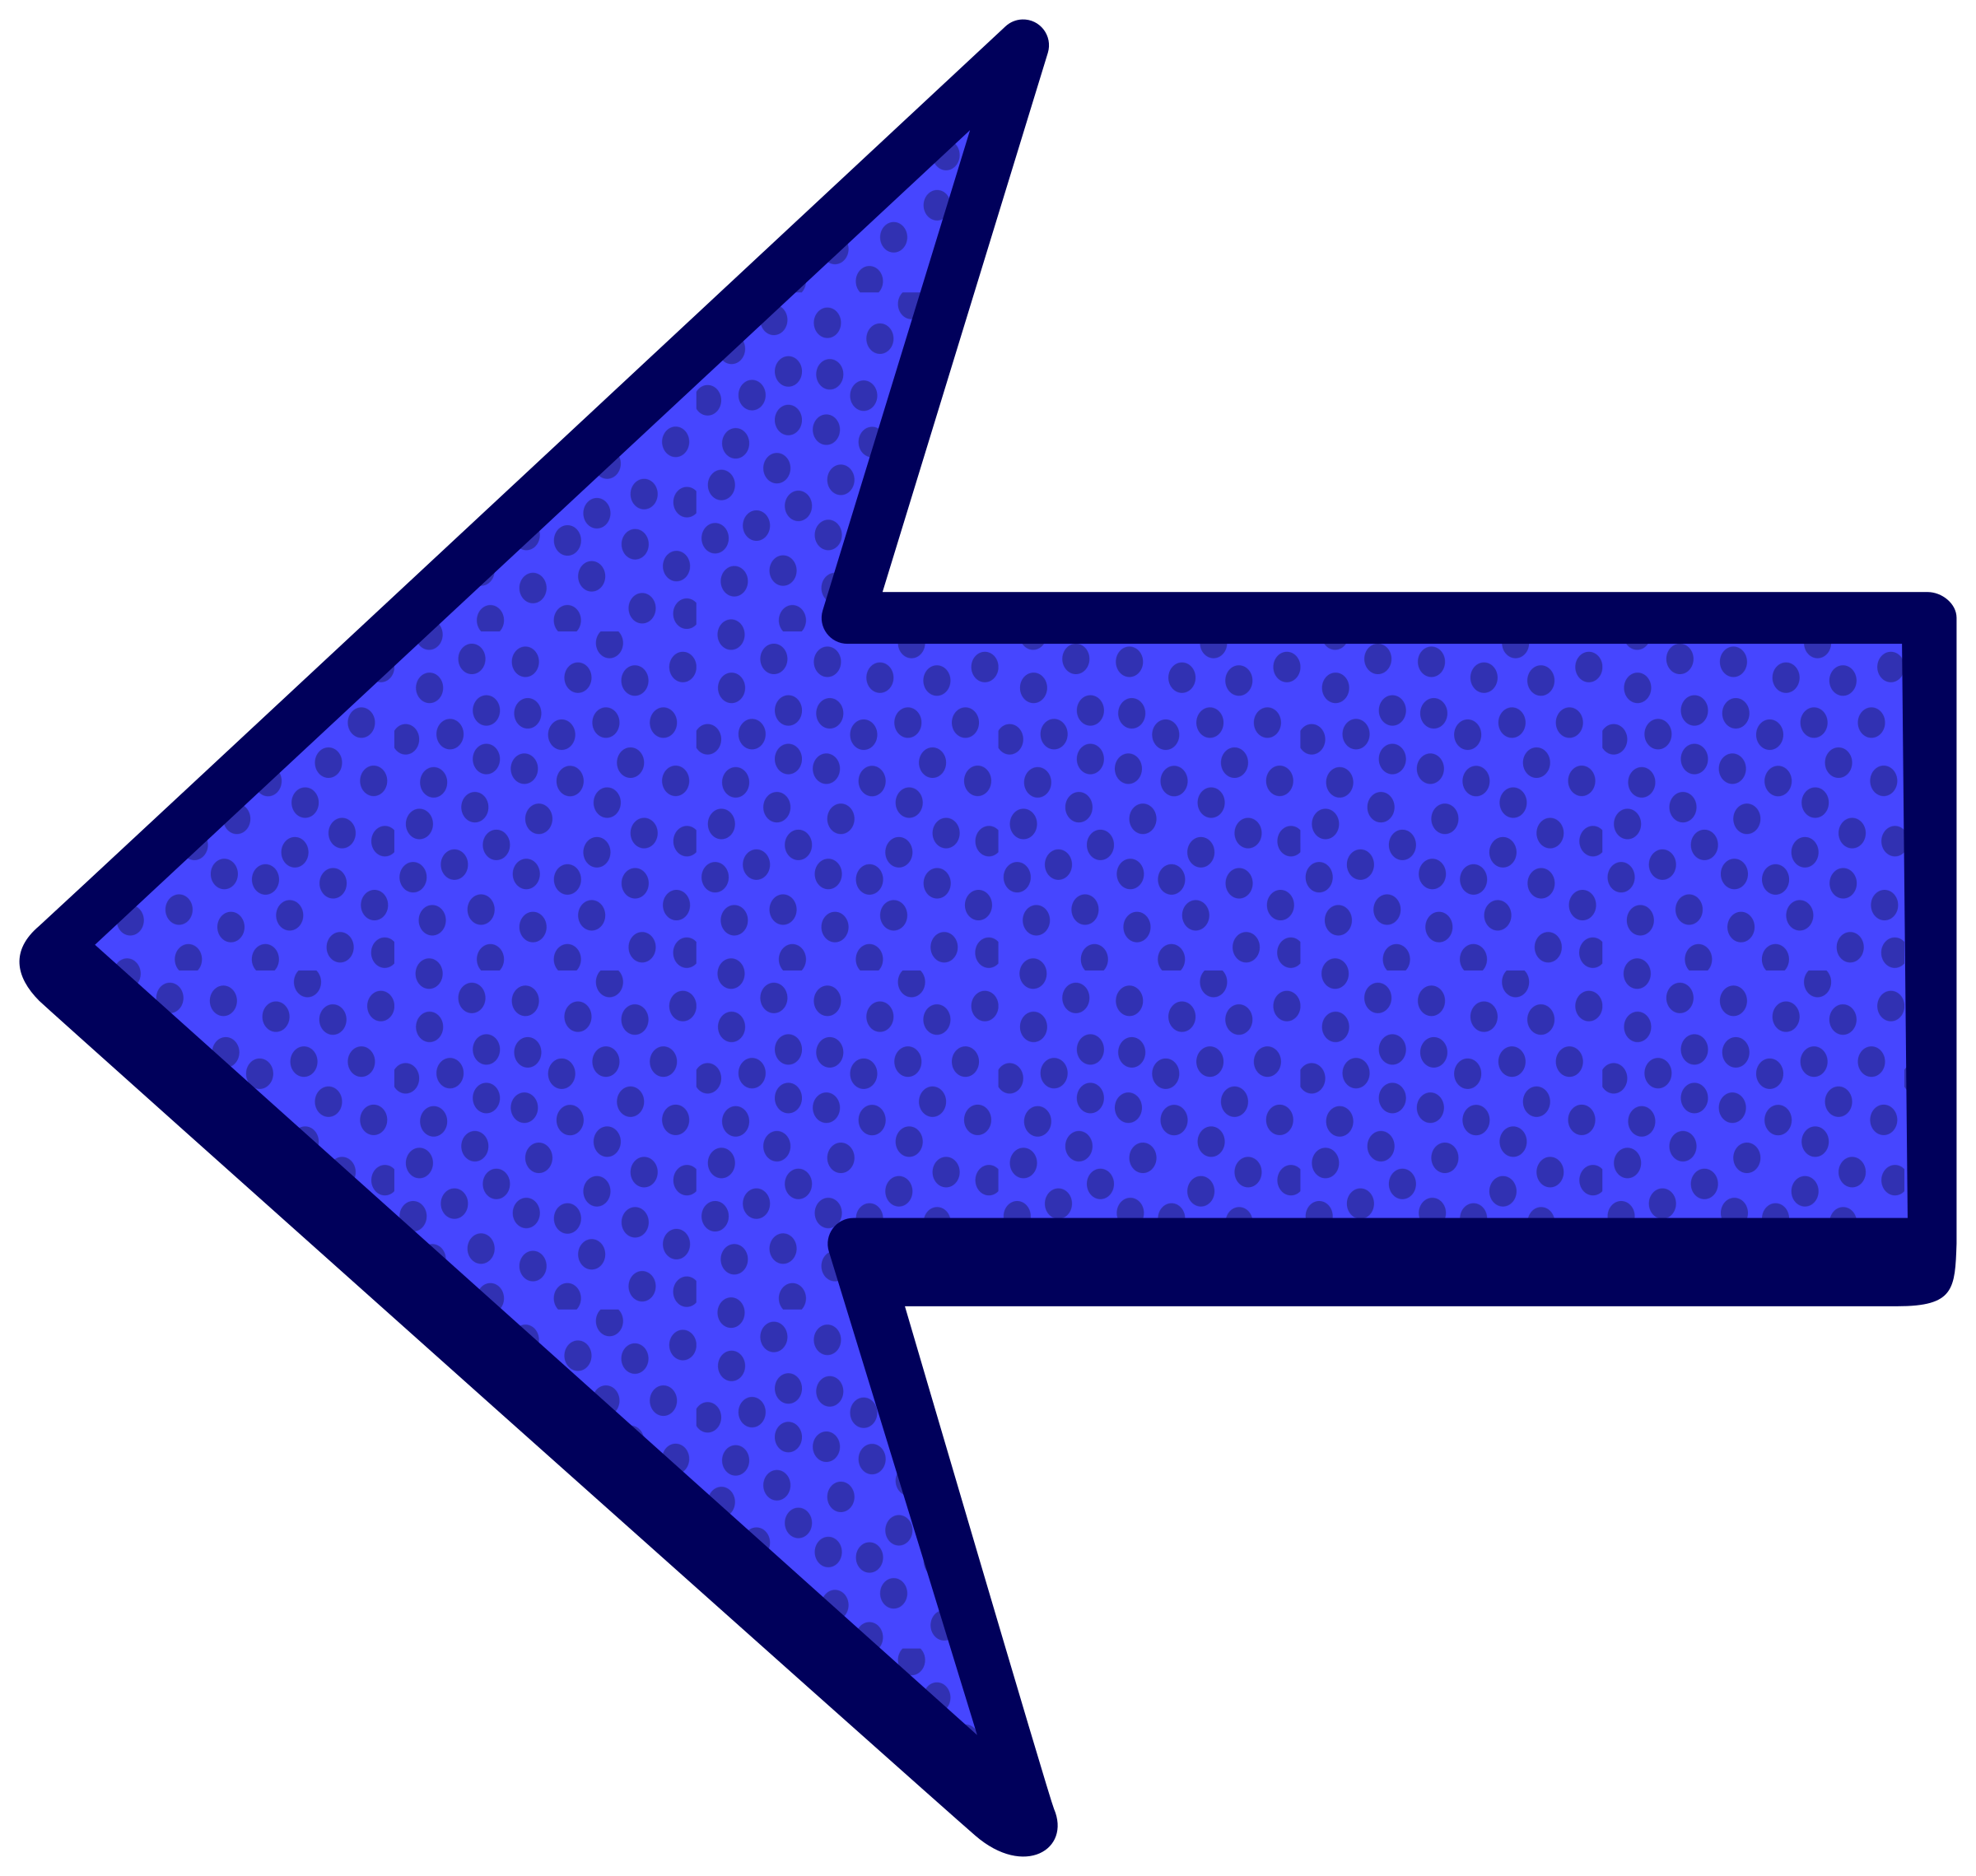 image download Clipart arrow. Coloured big image png